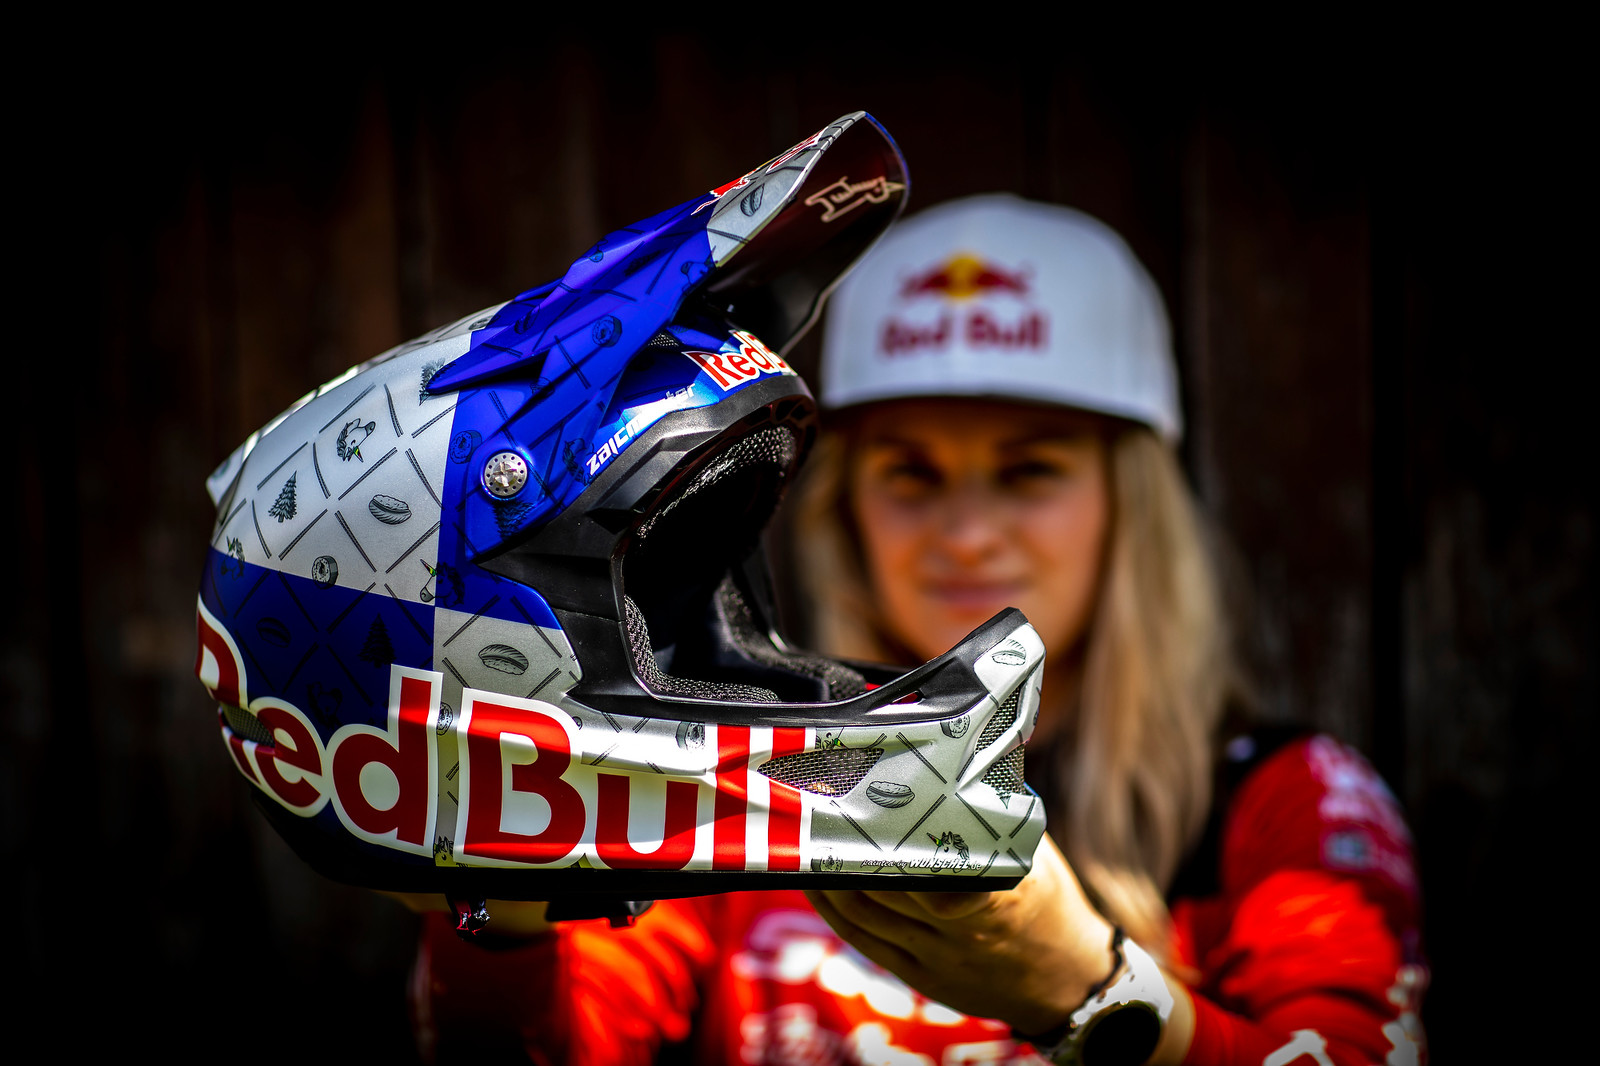 PIT BITS - Vali Holl's New Red Bull Helmet and TLD x Truvativ Collab Goods